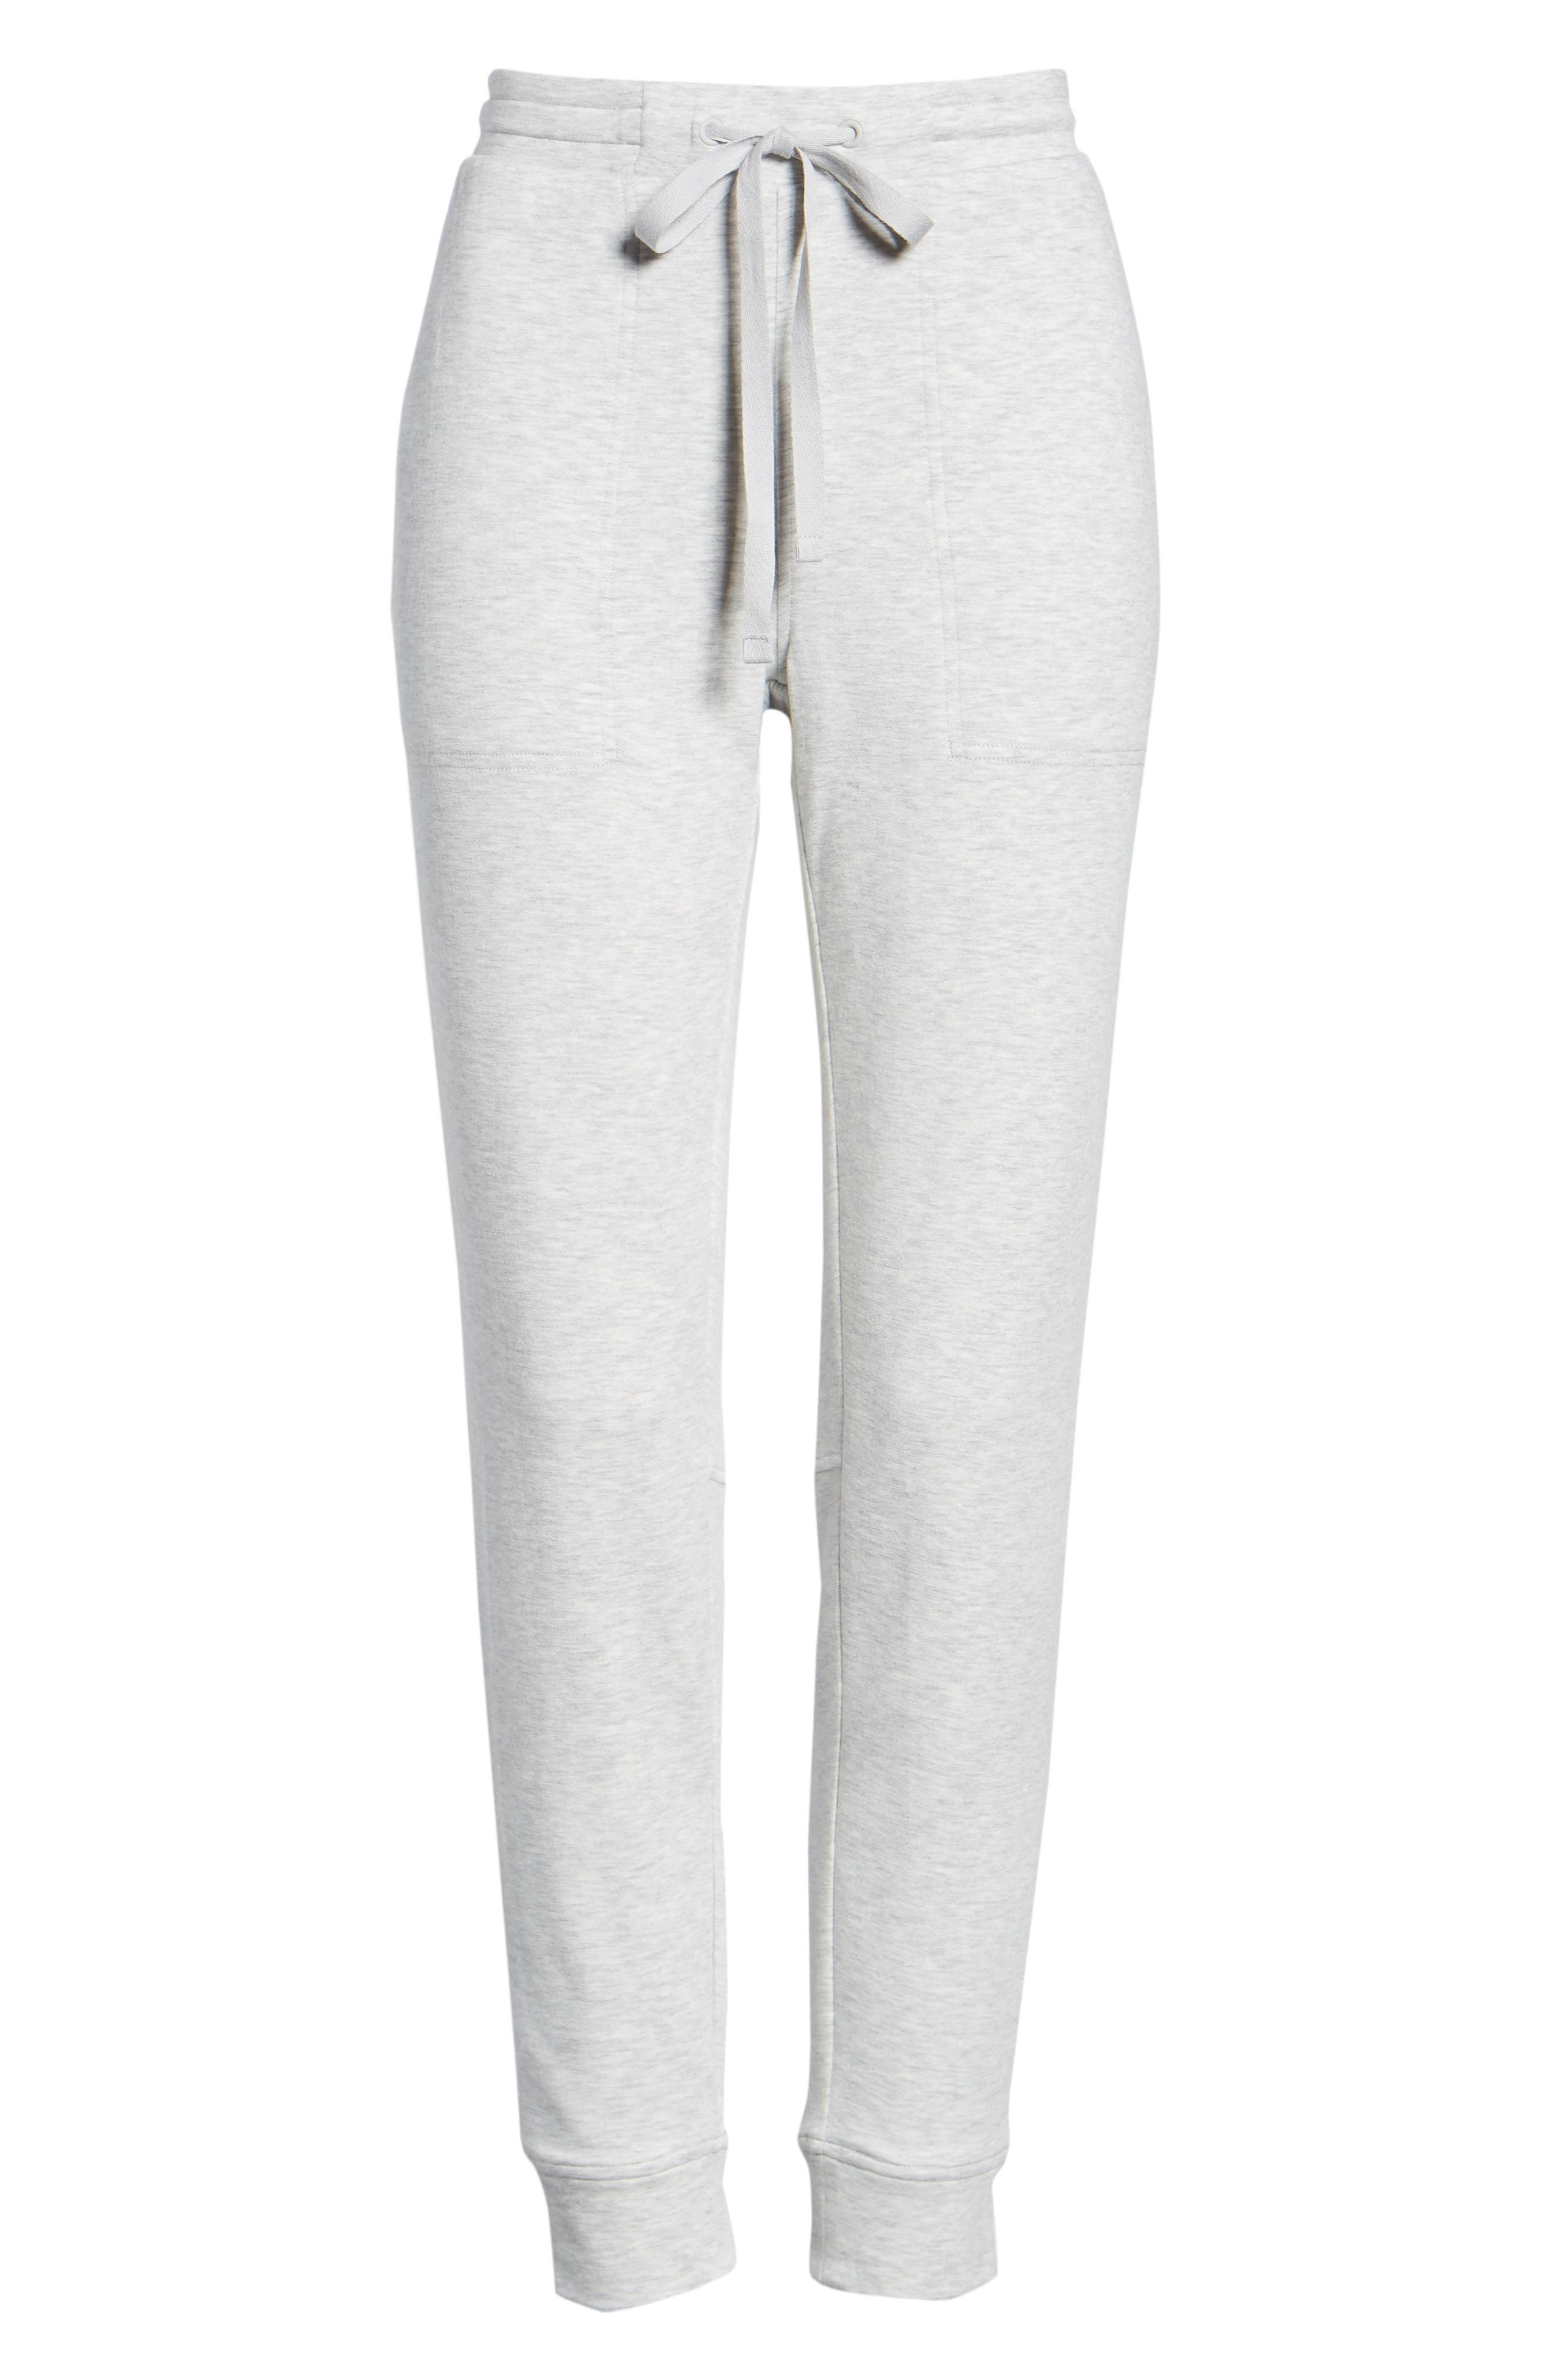 Zen Bounce Upstate Sweatpants,                             Alternate thumbnail 8, color,                             SLEEK HEATHER GREY